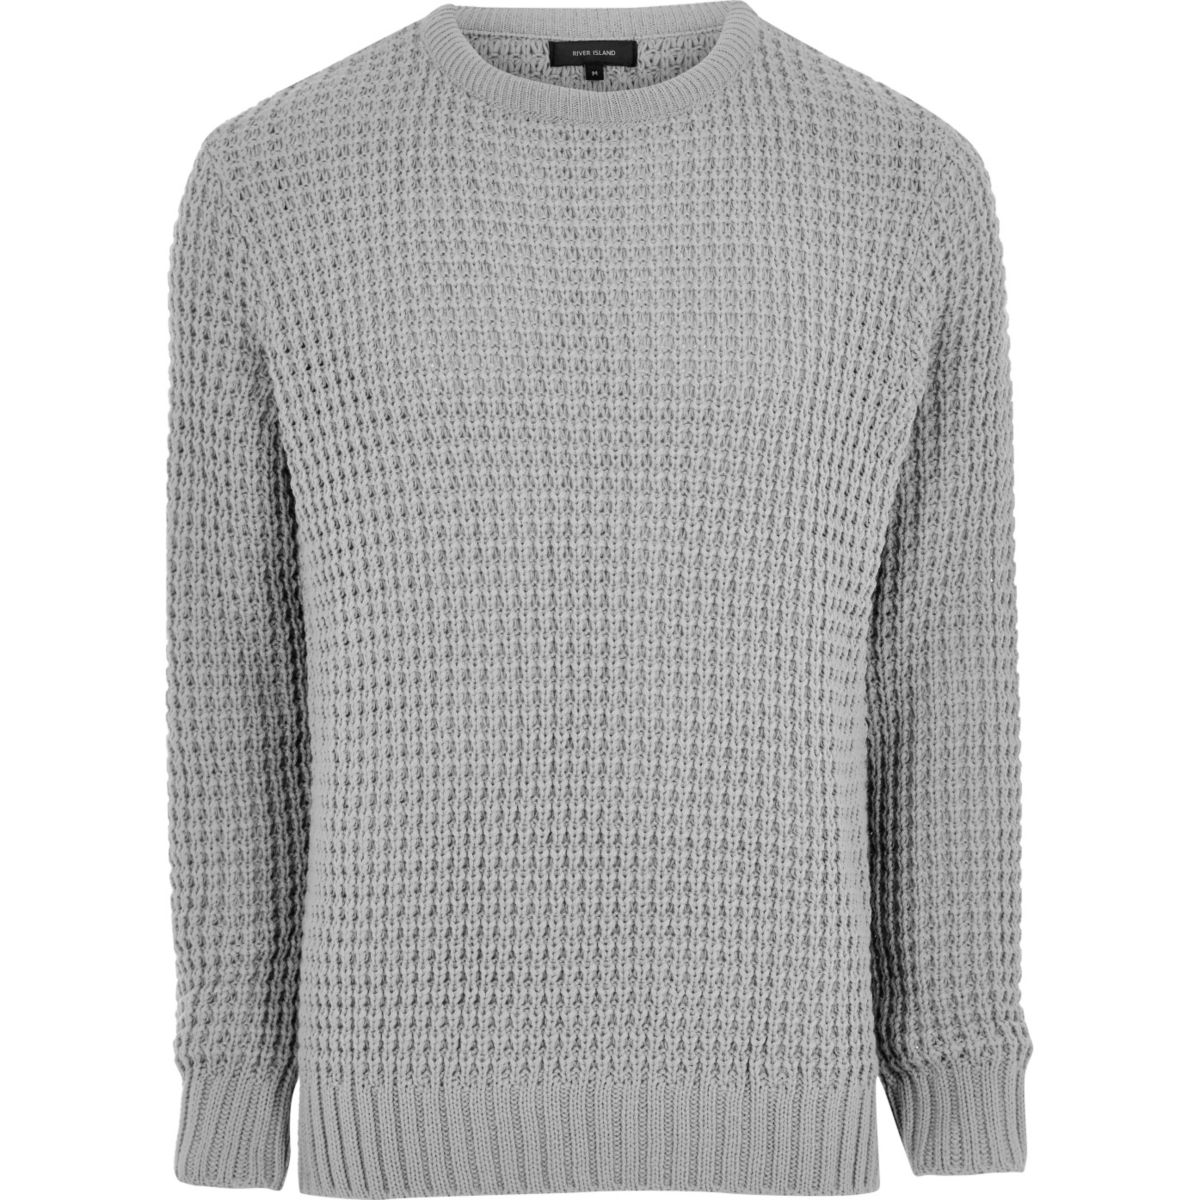 Grey textured waffle knit sweater